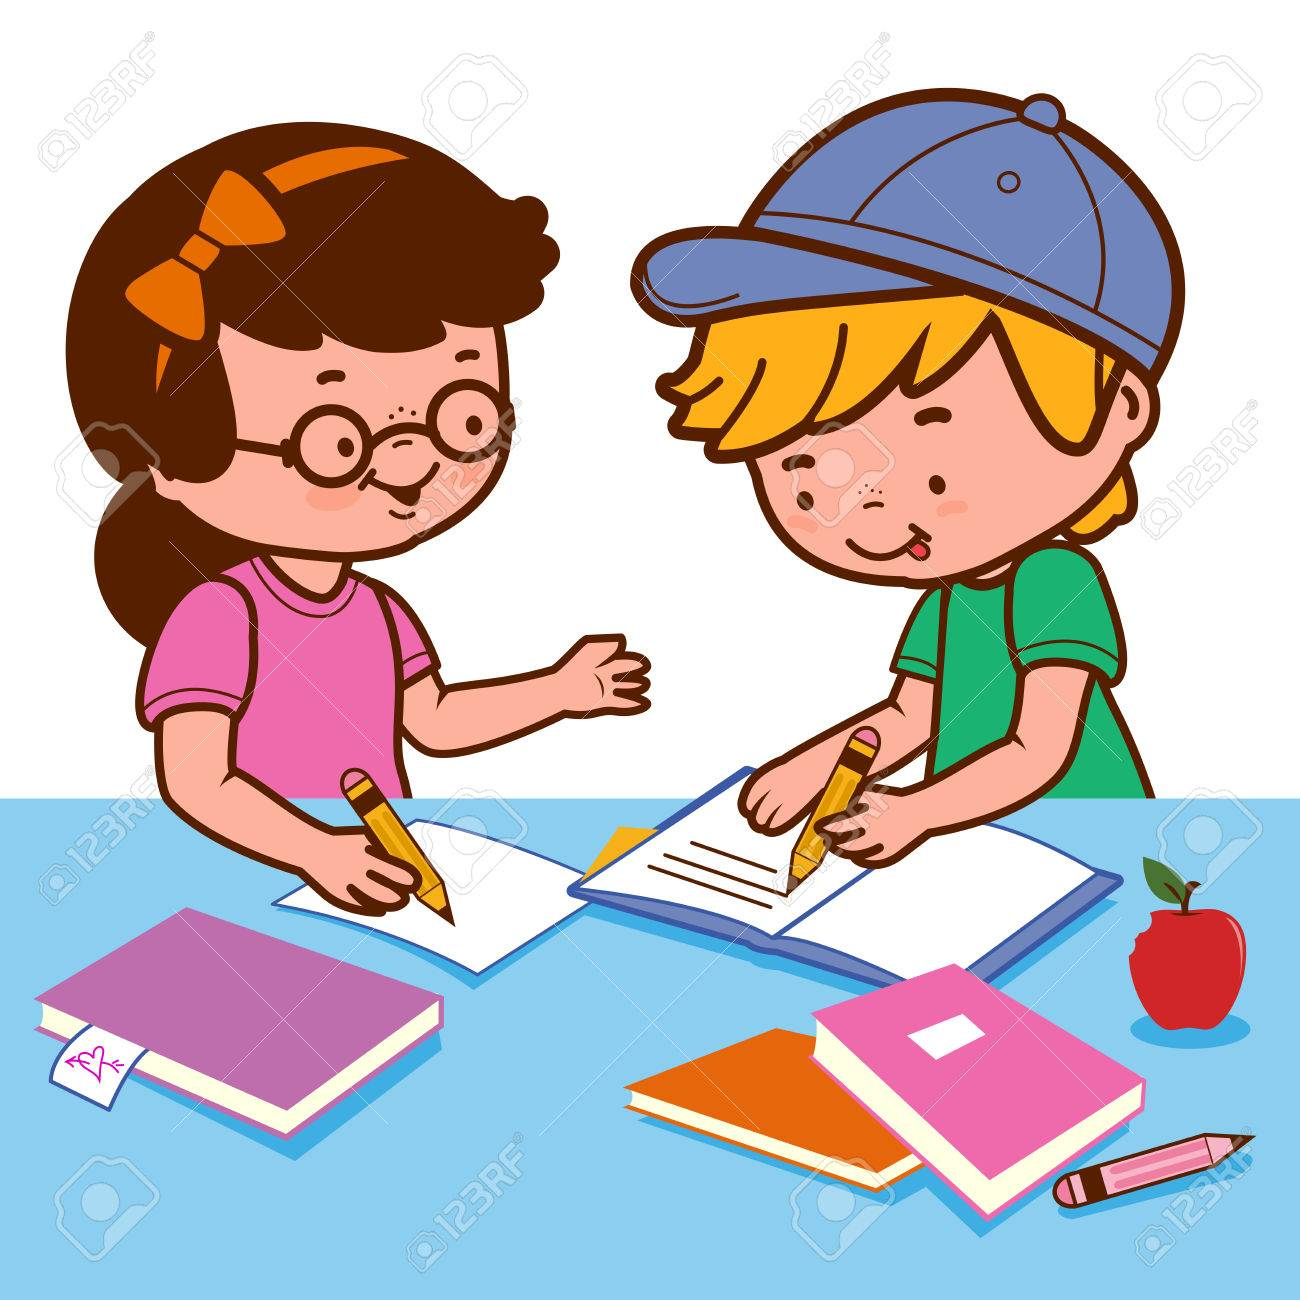 girl and boy doing homework royalty free cliparts vectors and rh 123rf com doing homework clipart black and white student doing homework clipart